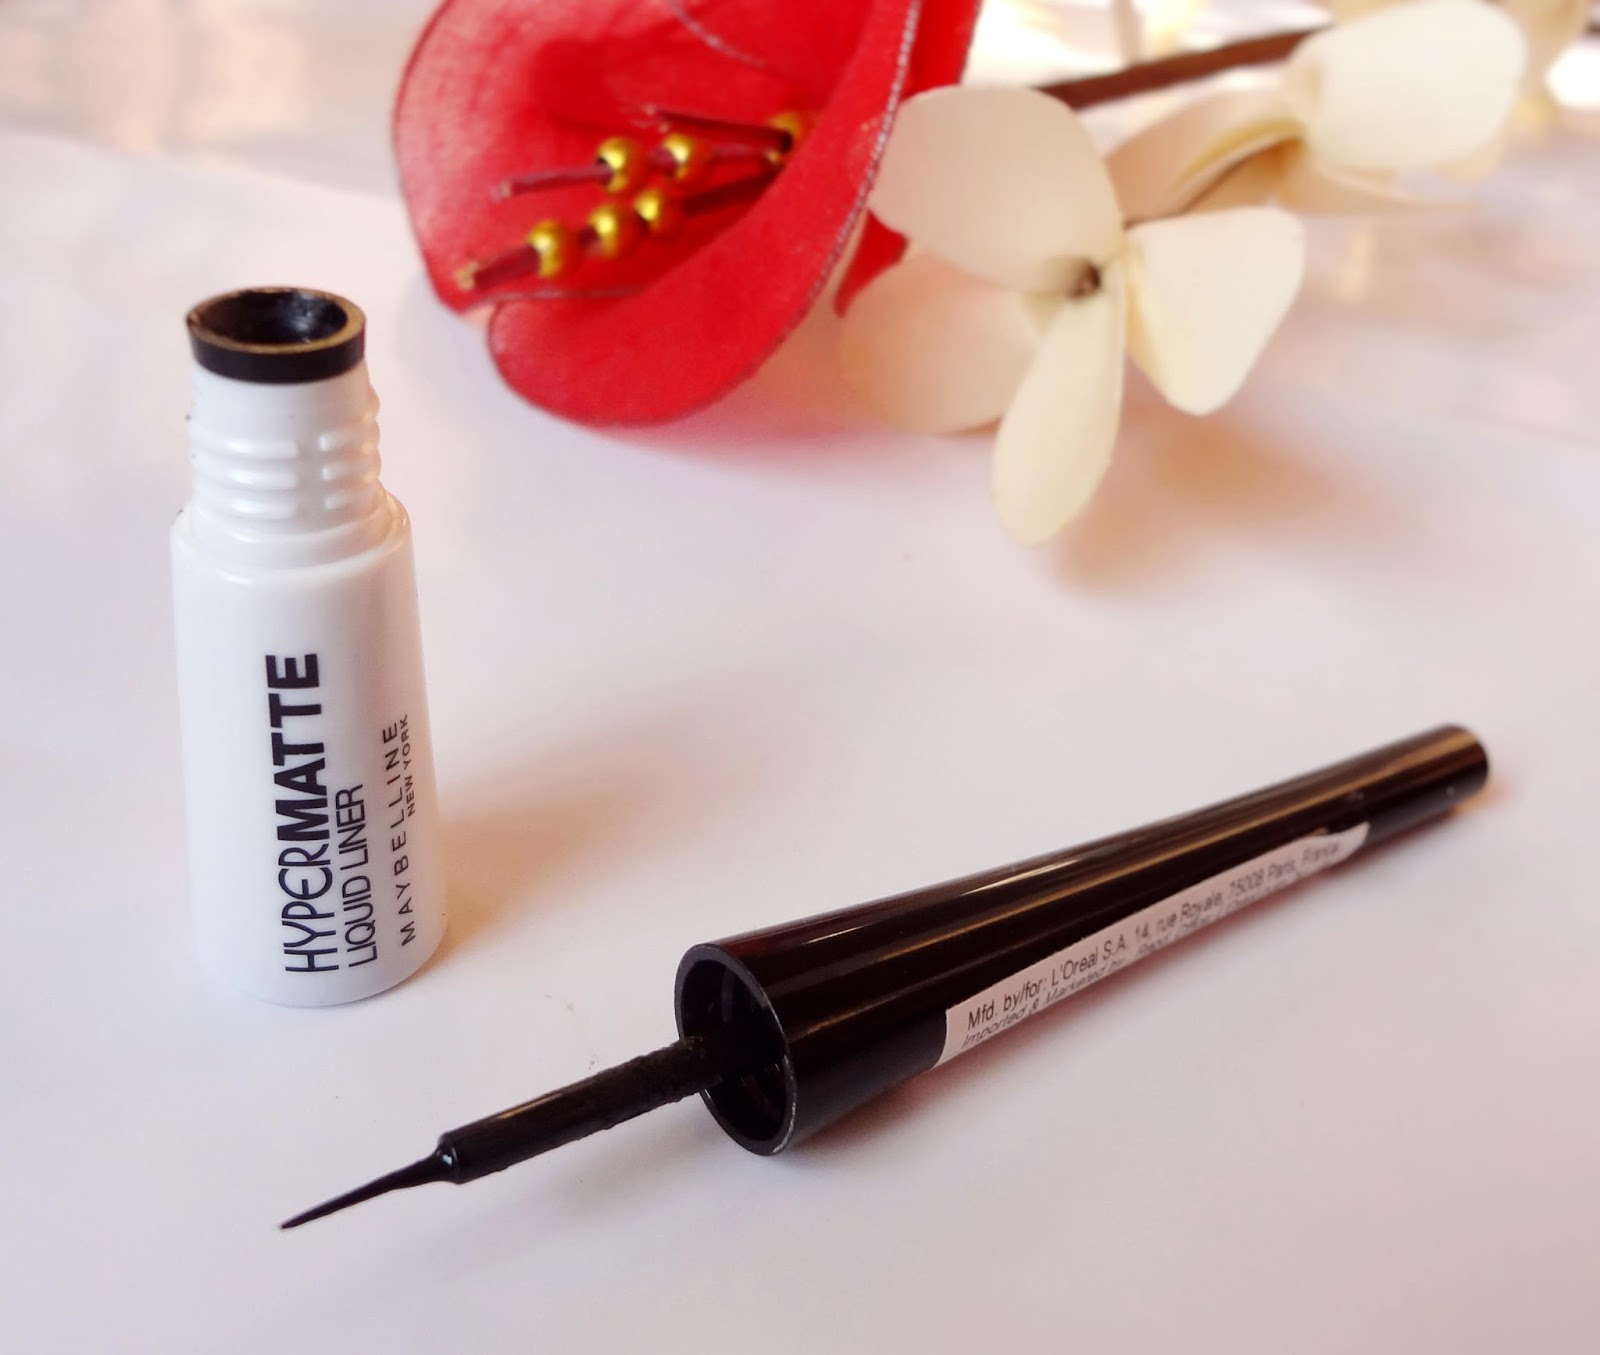 Maybelline New York Hyper Matte Liquid Liner Review And Swatch Ink Packaging Comes In A Long Sleek Tube Which Has White Color Bottom With Thin Black Screw Cap Precise